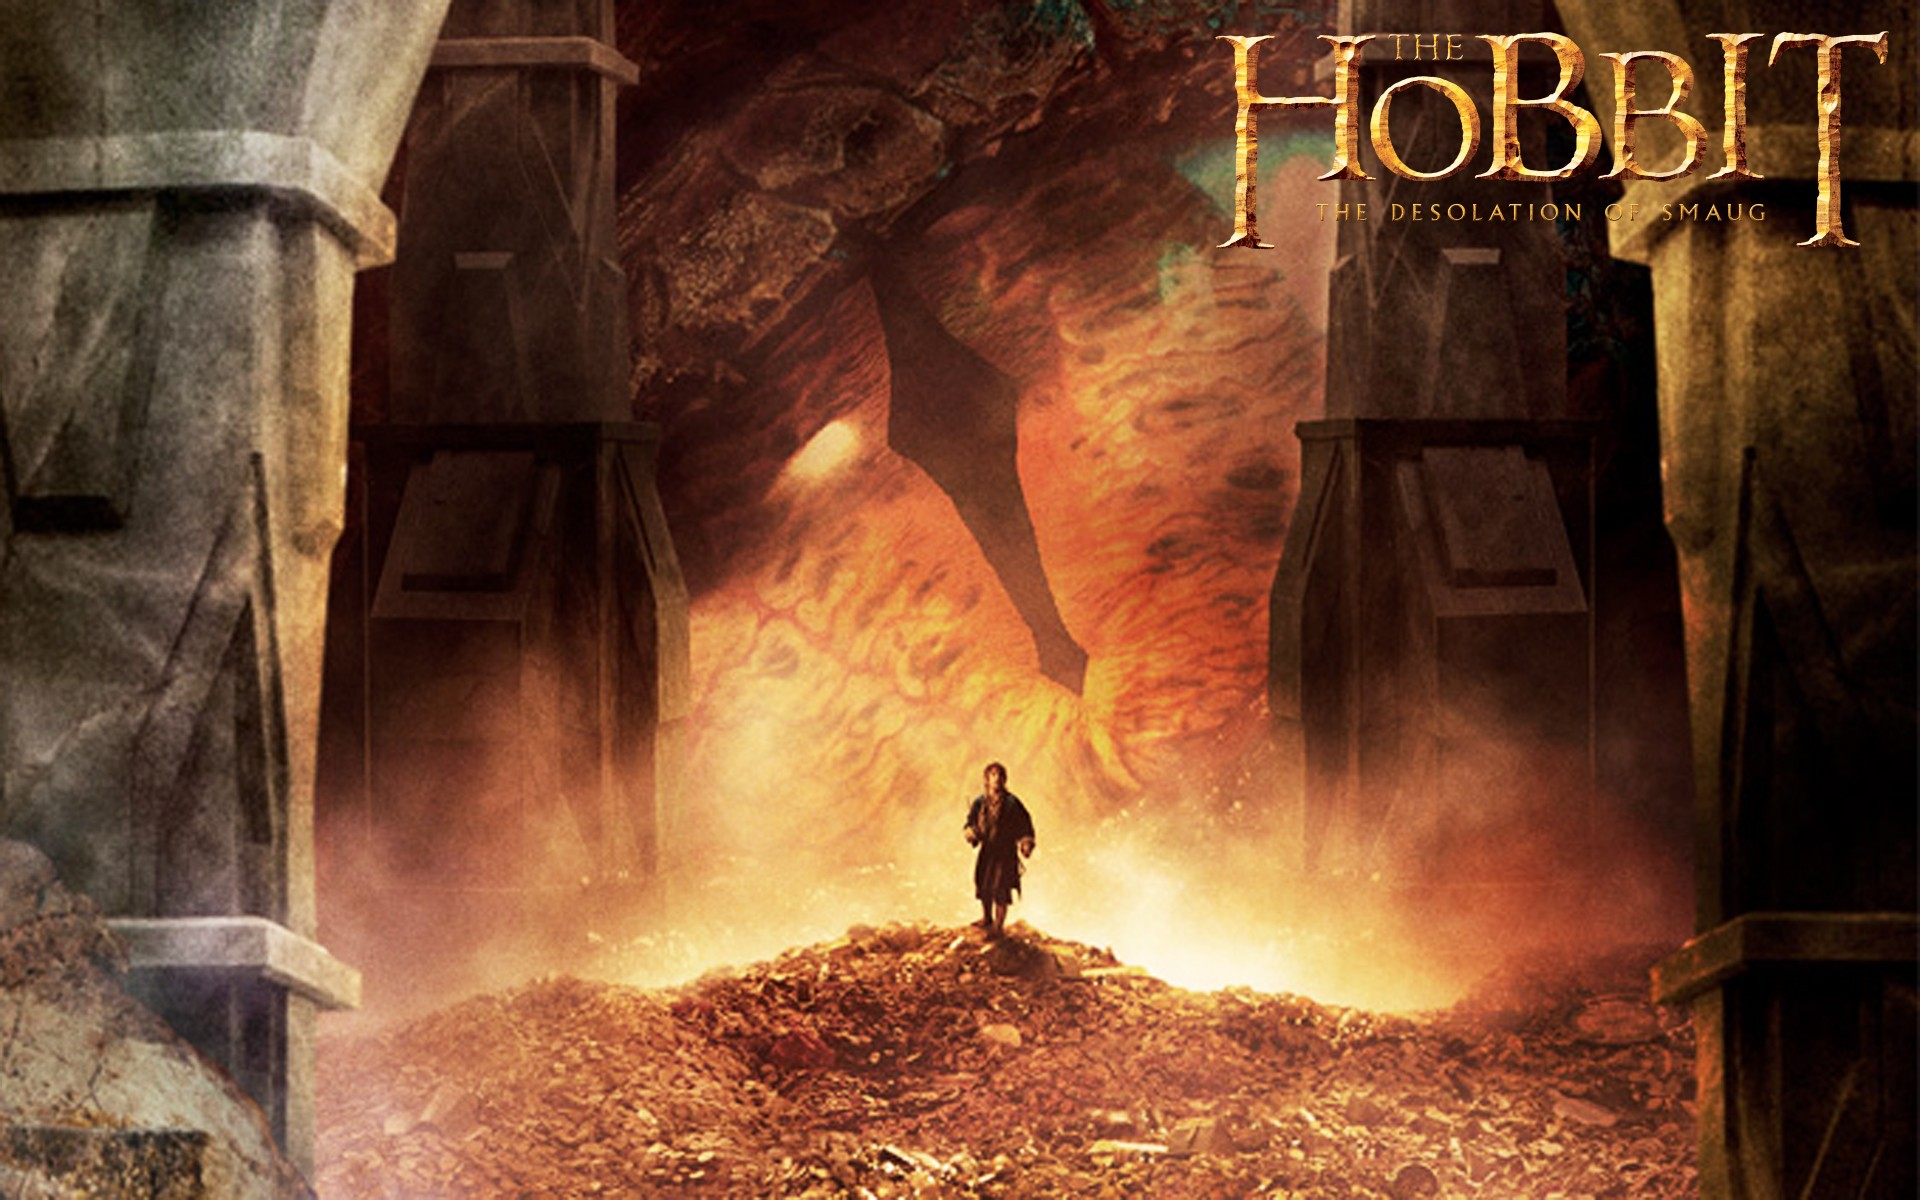 The Hobbit The Desolation of Smaug is a 2013 epic high fantasy adventure film directed by Peter Jackson and produced by WingNut Films in collaboration with New Line